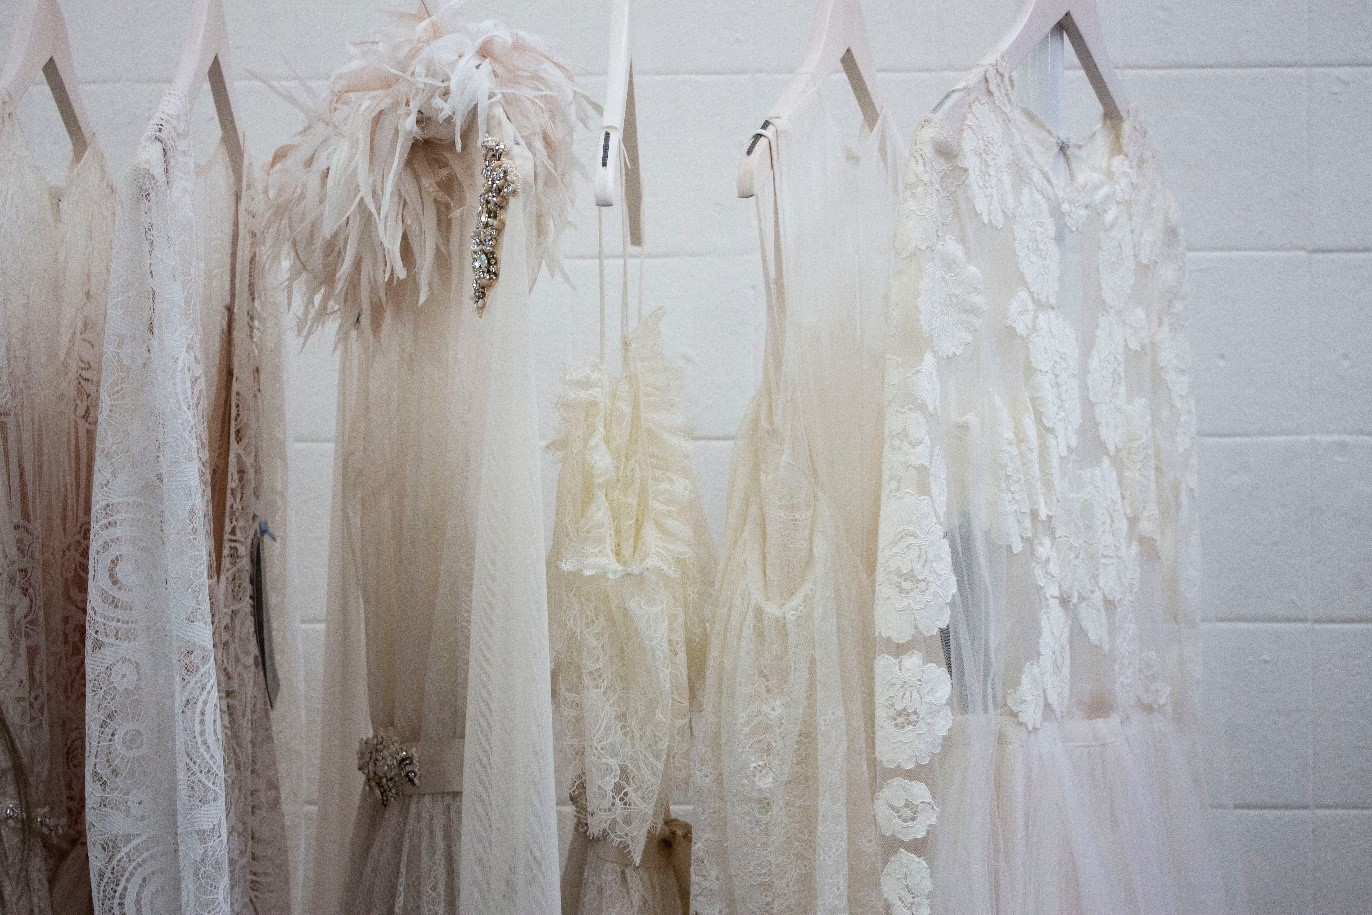 A rack with many differently cut dresses.